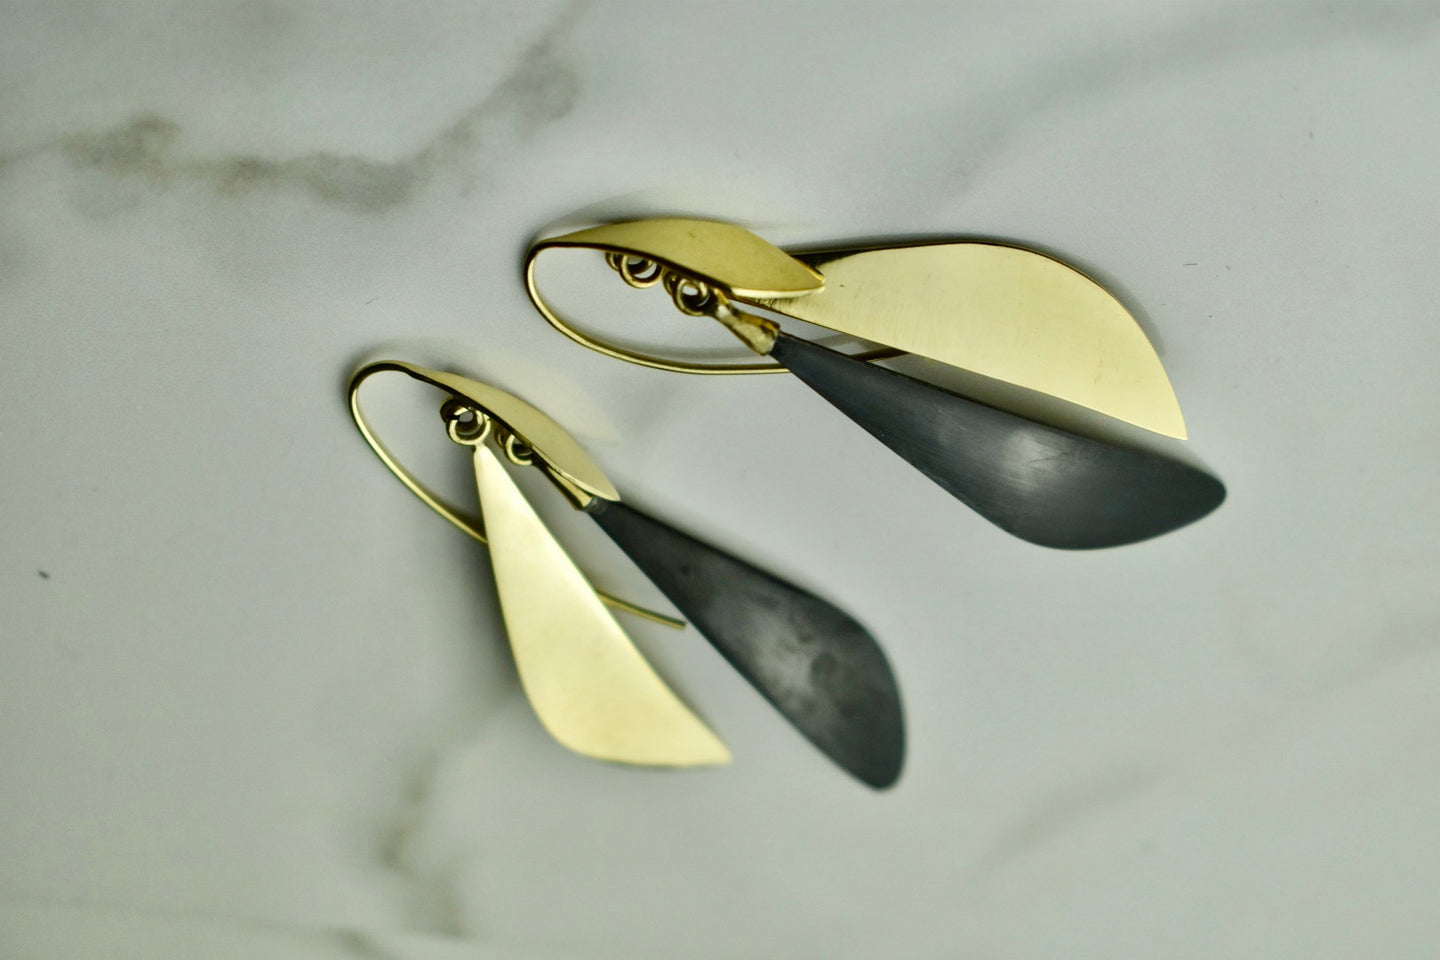 Soko Makena Threader Earrings Mixed Material Gold/Black